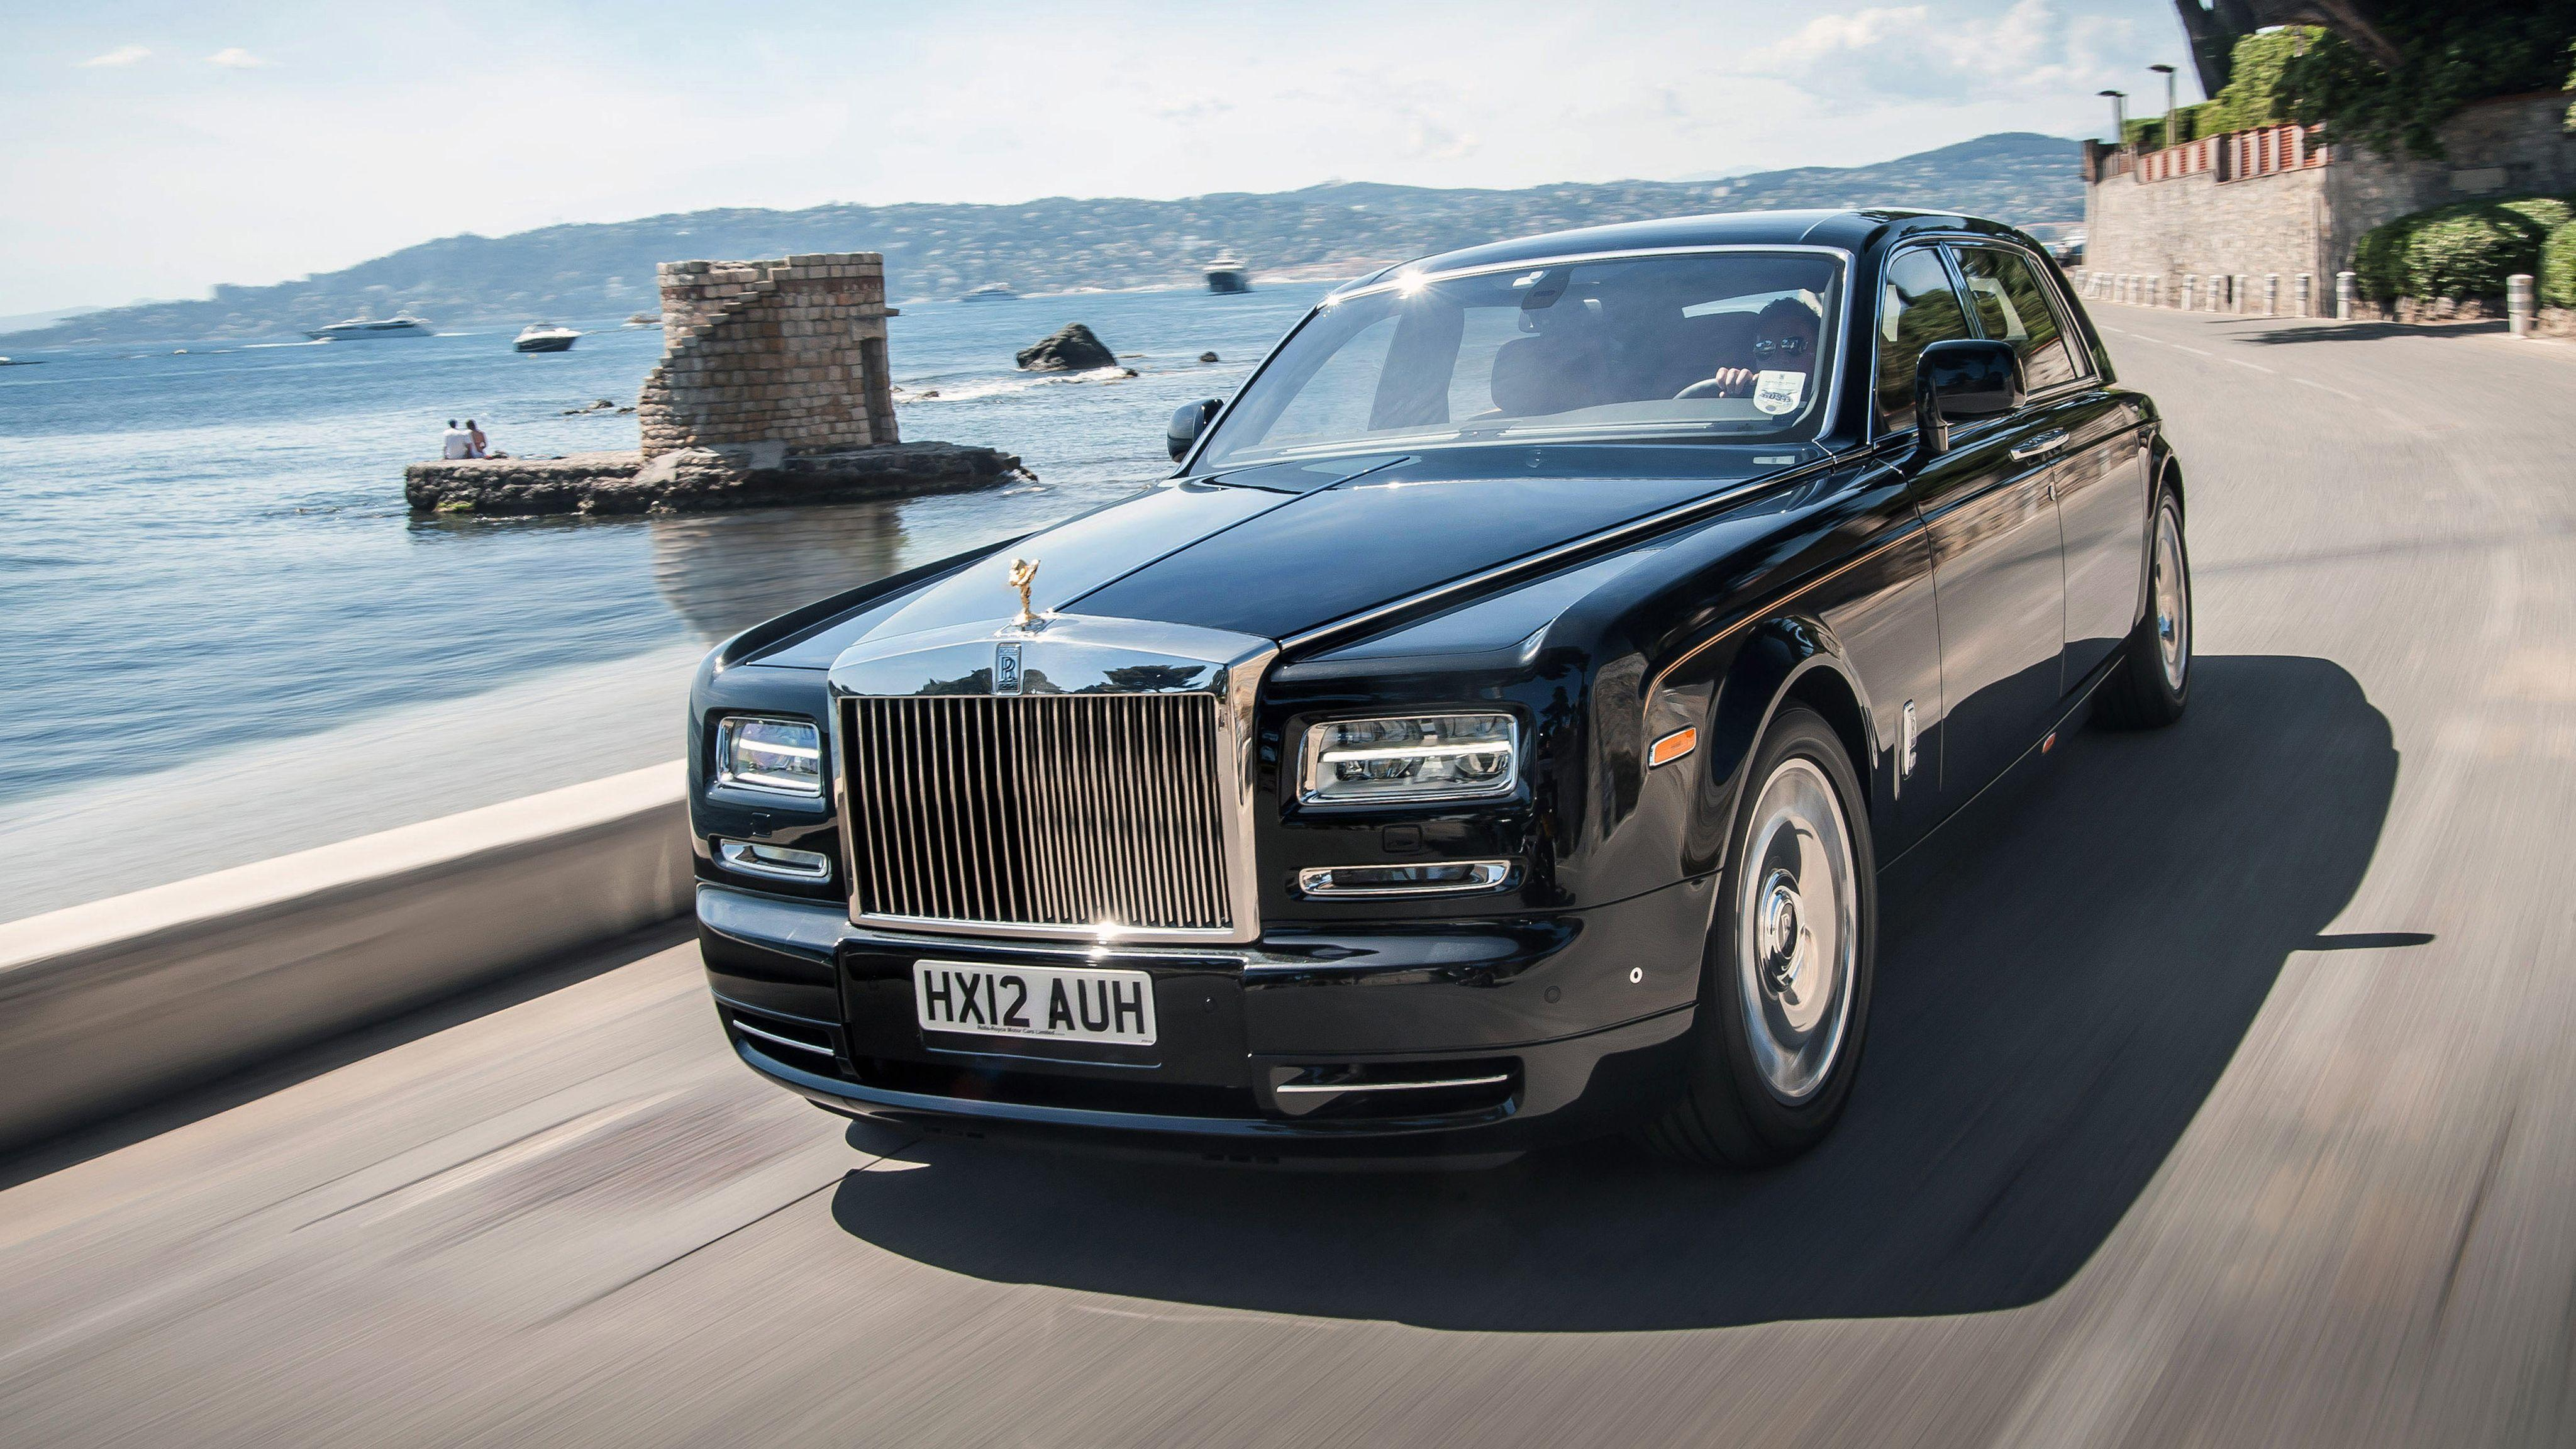 Rolls Royce Phantom EWB 2017 4K Wallpapers